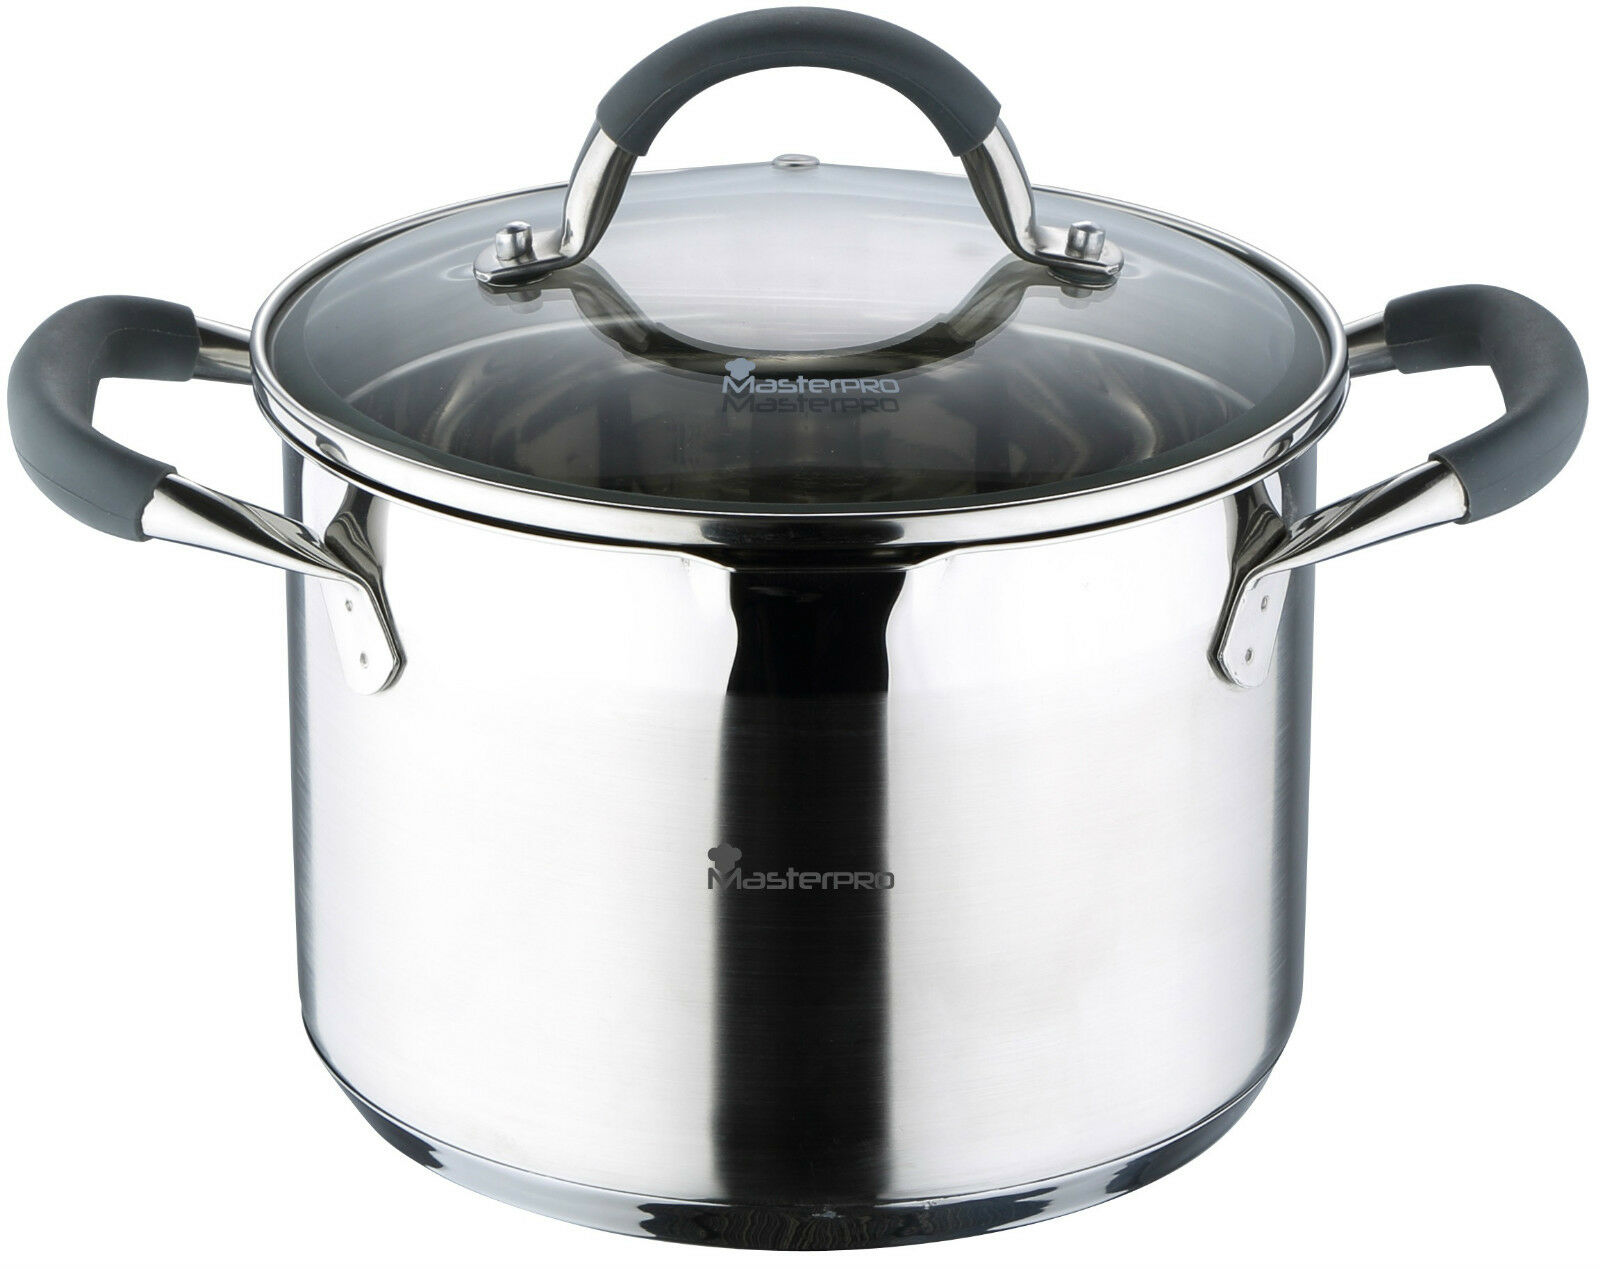 Bergner Masterpro Stainless Steel Pans Full Induction with Strainer & Handles